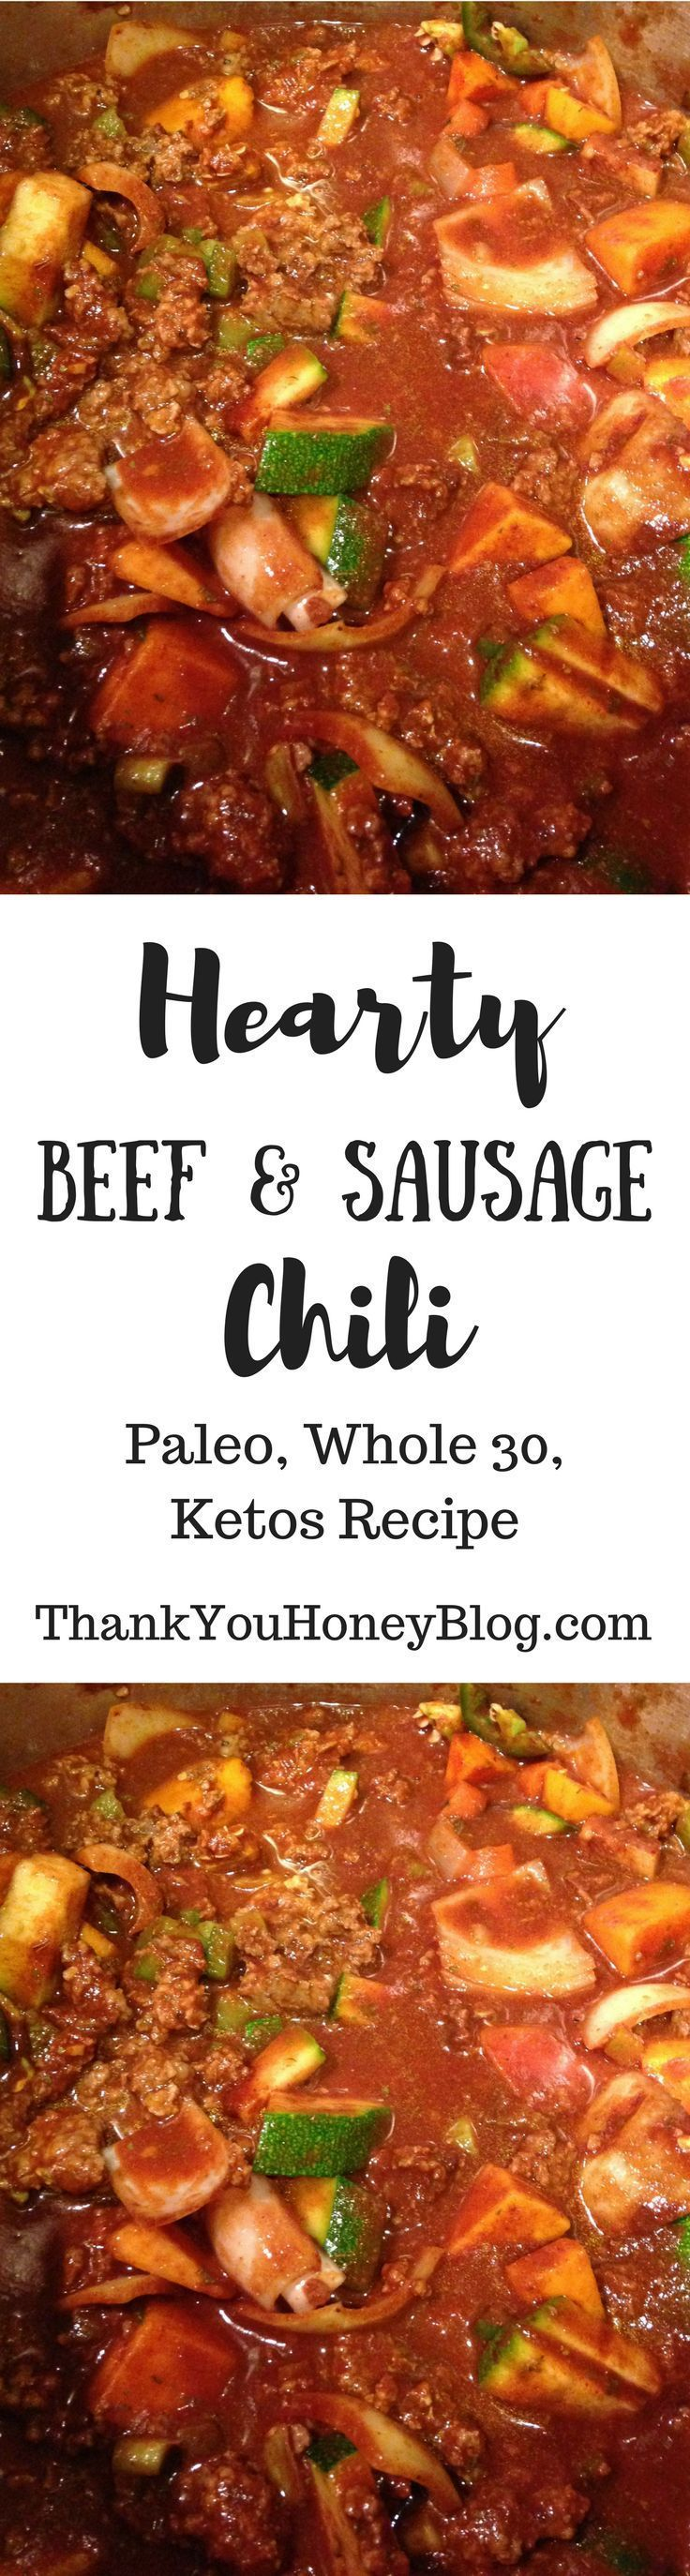 Hearty Beef  Sausage Chili recipe is perfect for Game Day tailgating or homegating Its Paleo glutenfree Whole 30 and Ketos Easy to make ahead of time and serve Hearty Bee...